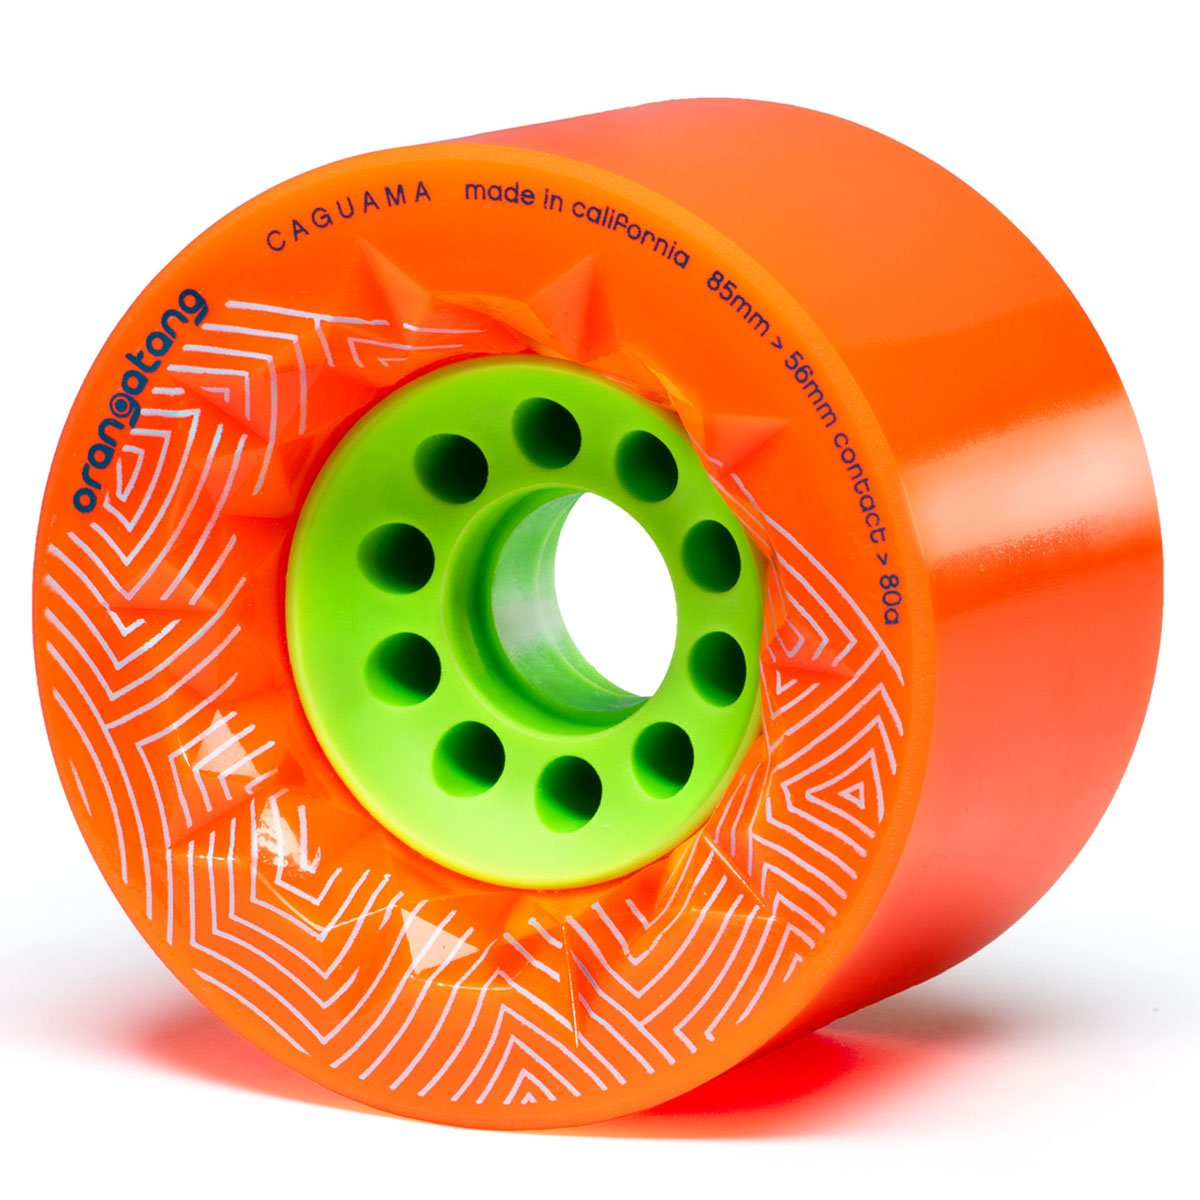 Orangatang Caguama 85 mm 80a Downhill Longboard Skateboard Cruising Wheels w/Loaded Jehu V2 Bearings (Orange, Set of 4) by Orangatang